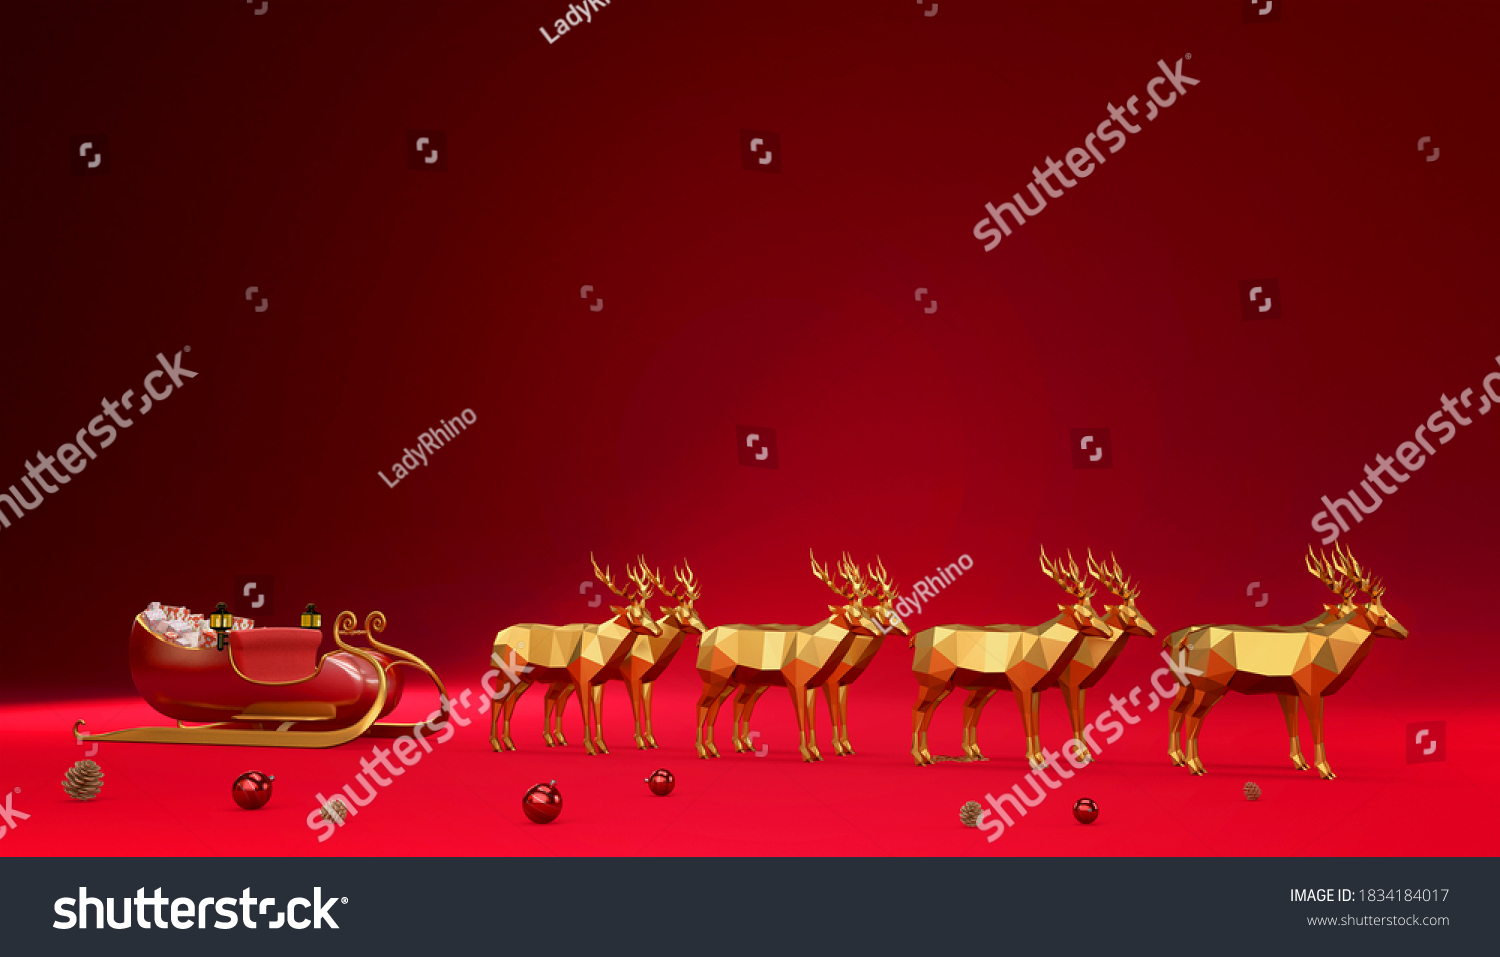 stock-photo-gold-reindeers-and-santa-gif